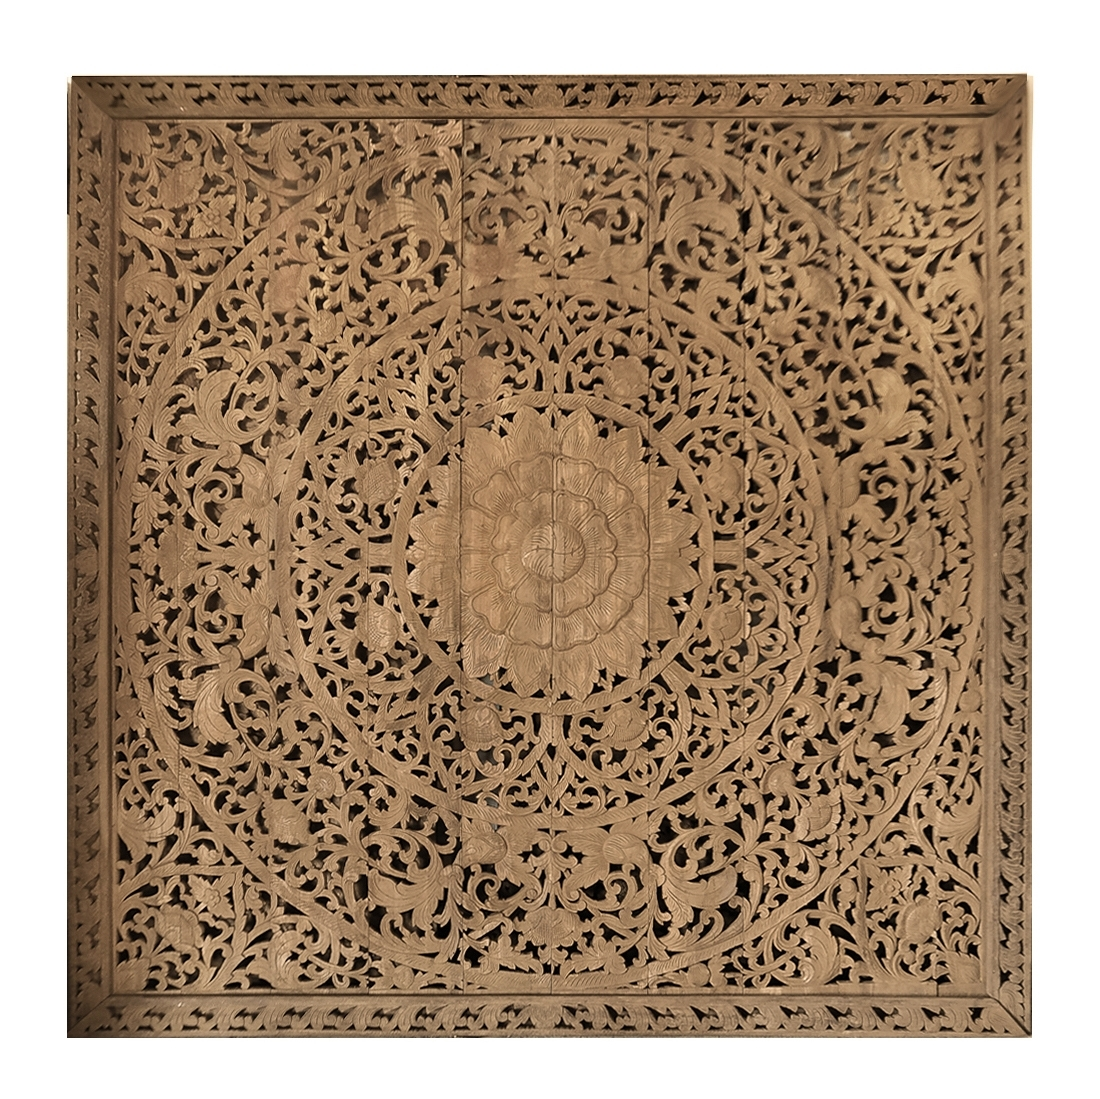 Buy Large Grand Carved Wooden Wall Art Or Ceiling Panel Online Throughout Newest Wooden Wall Art (View 3 of 15)